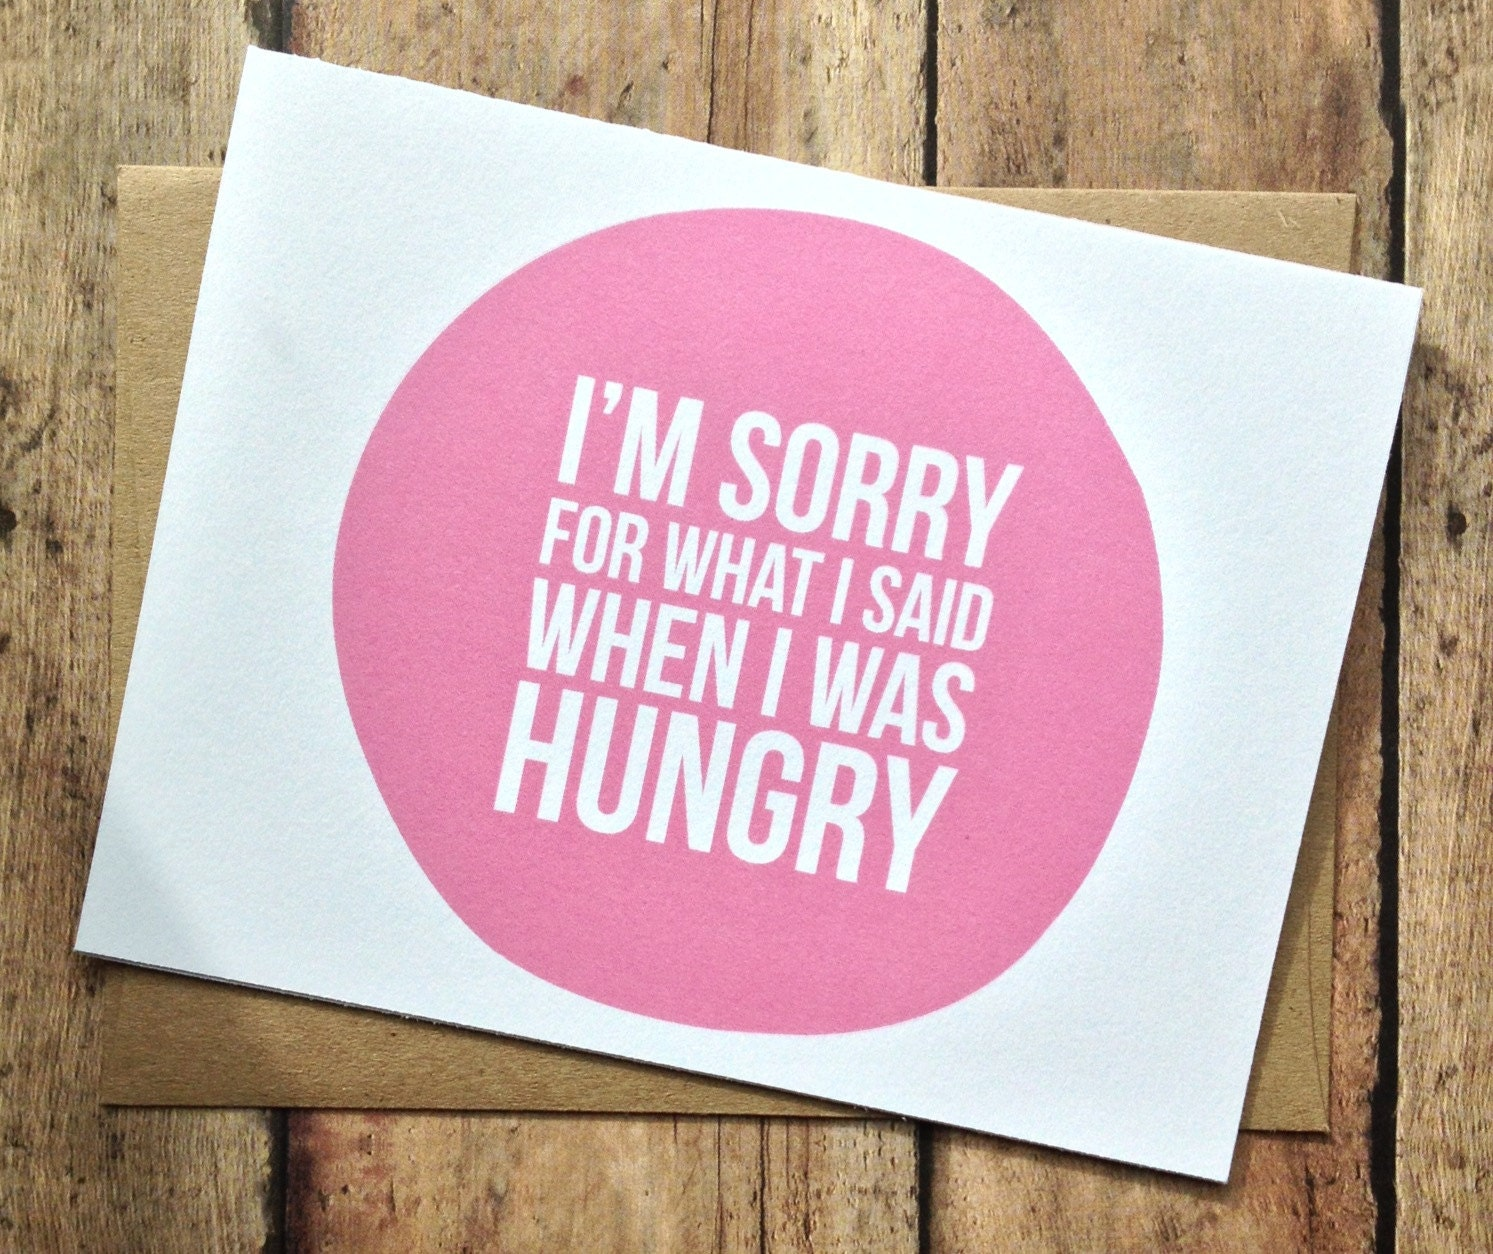 I'm sorry card - humorous card - funny I'm sorry card blank card - with kraft brown envelope